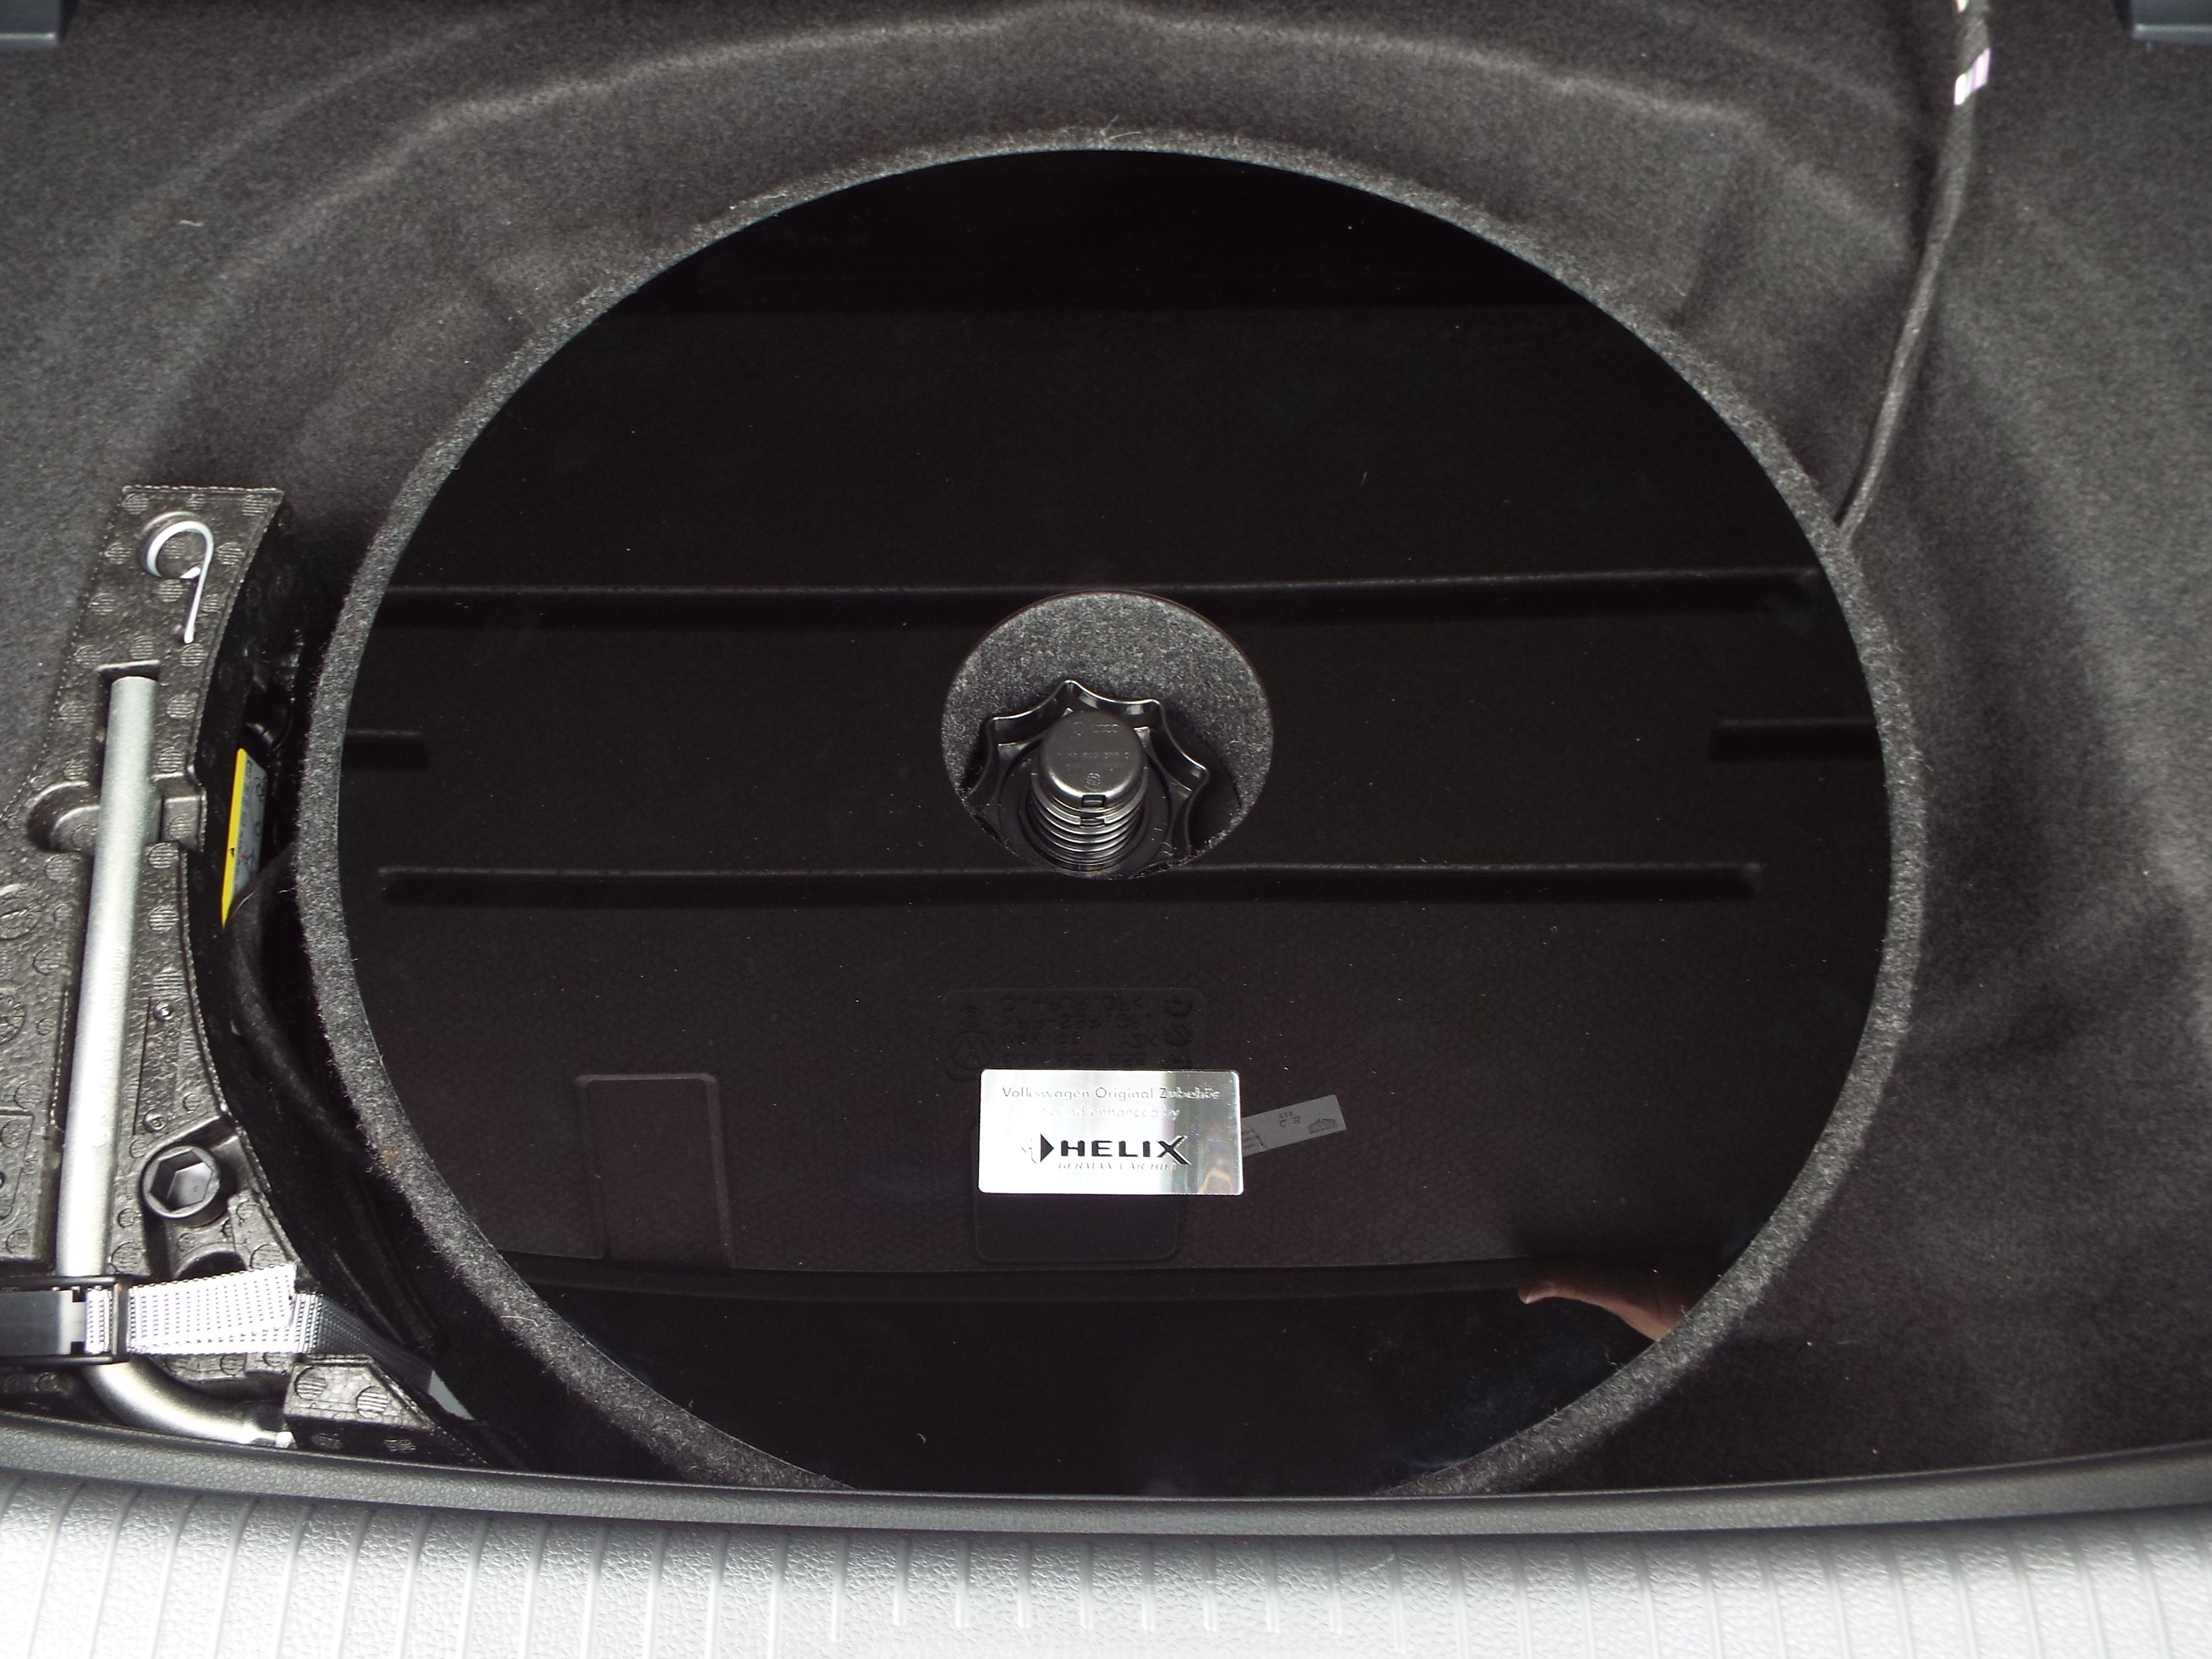 Helix Sound Upgrade Stealth Gti Thread Wiring Aftermarket Sub And Amp With Req Volume Sensing Bass